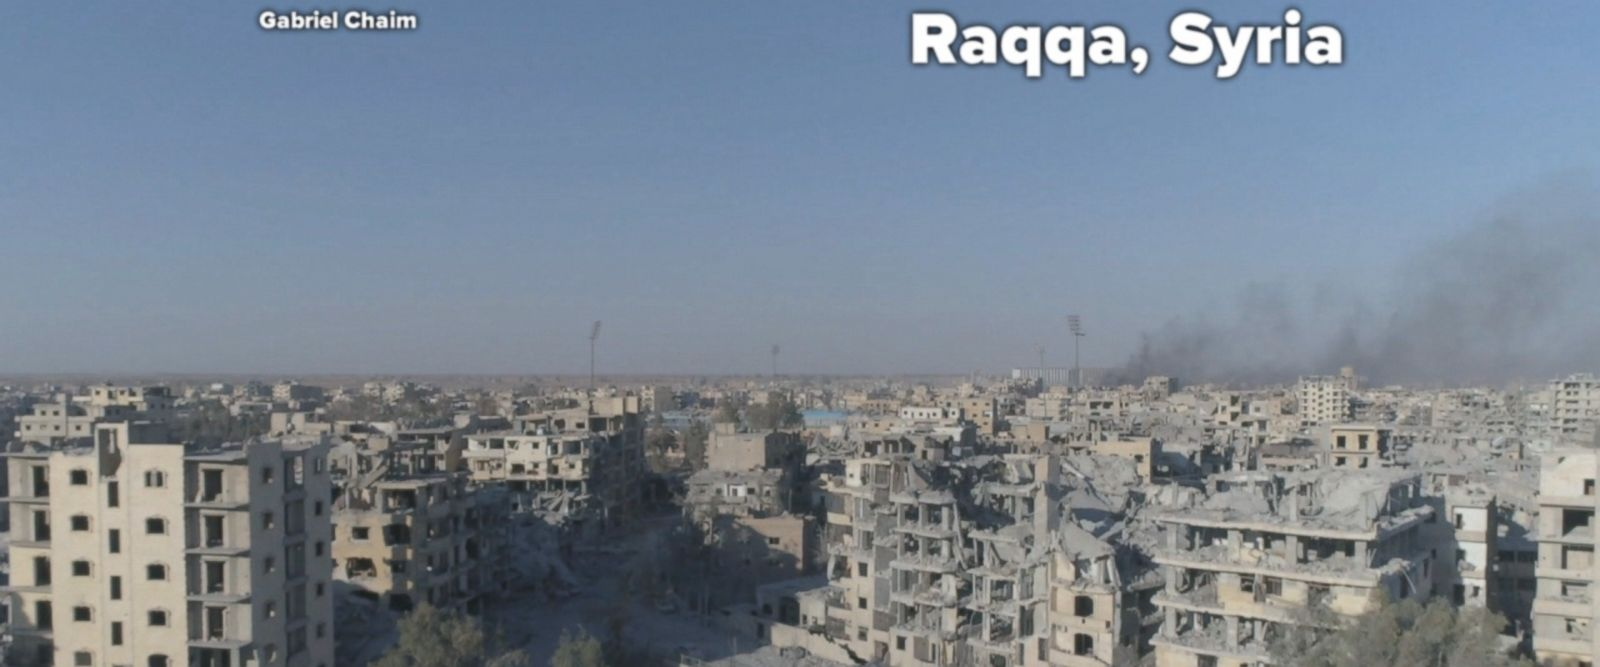 Raqqa, Syria, has suffered massive destruction since the militants took over in 2014.